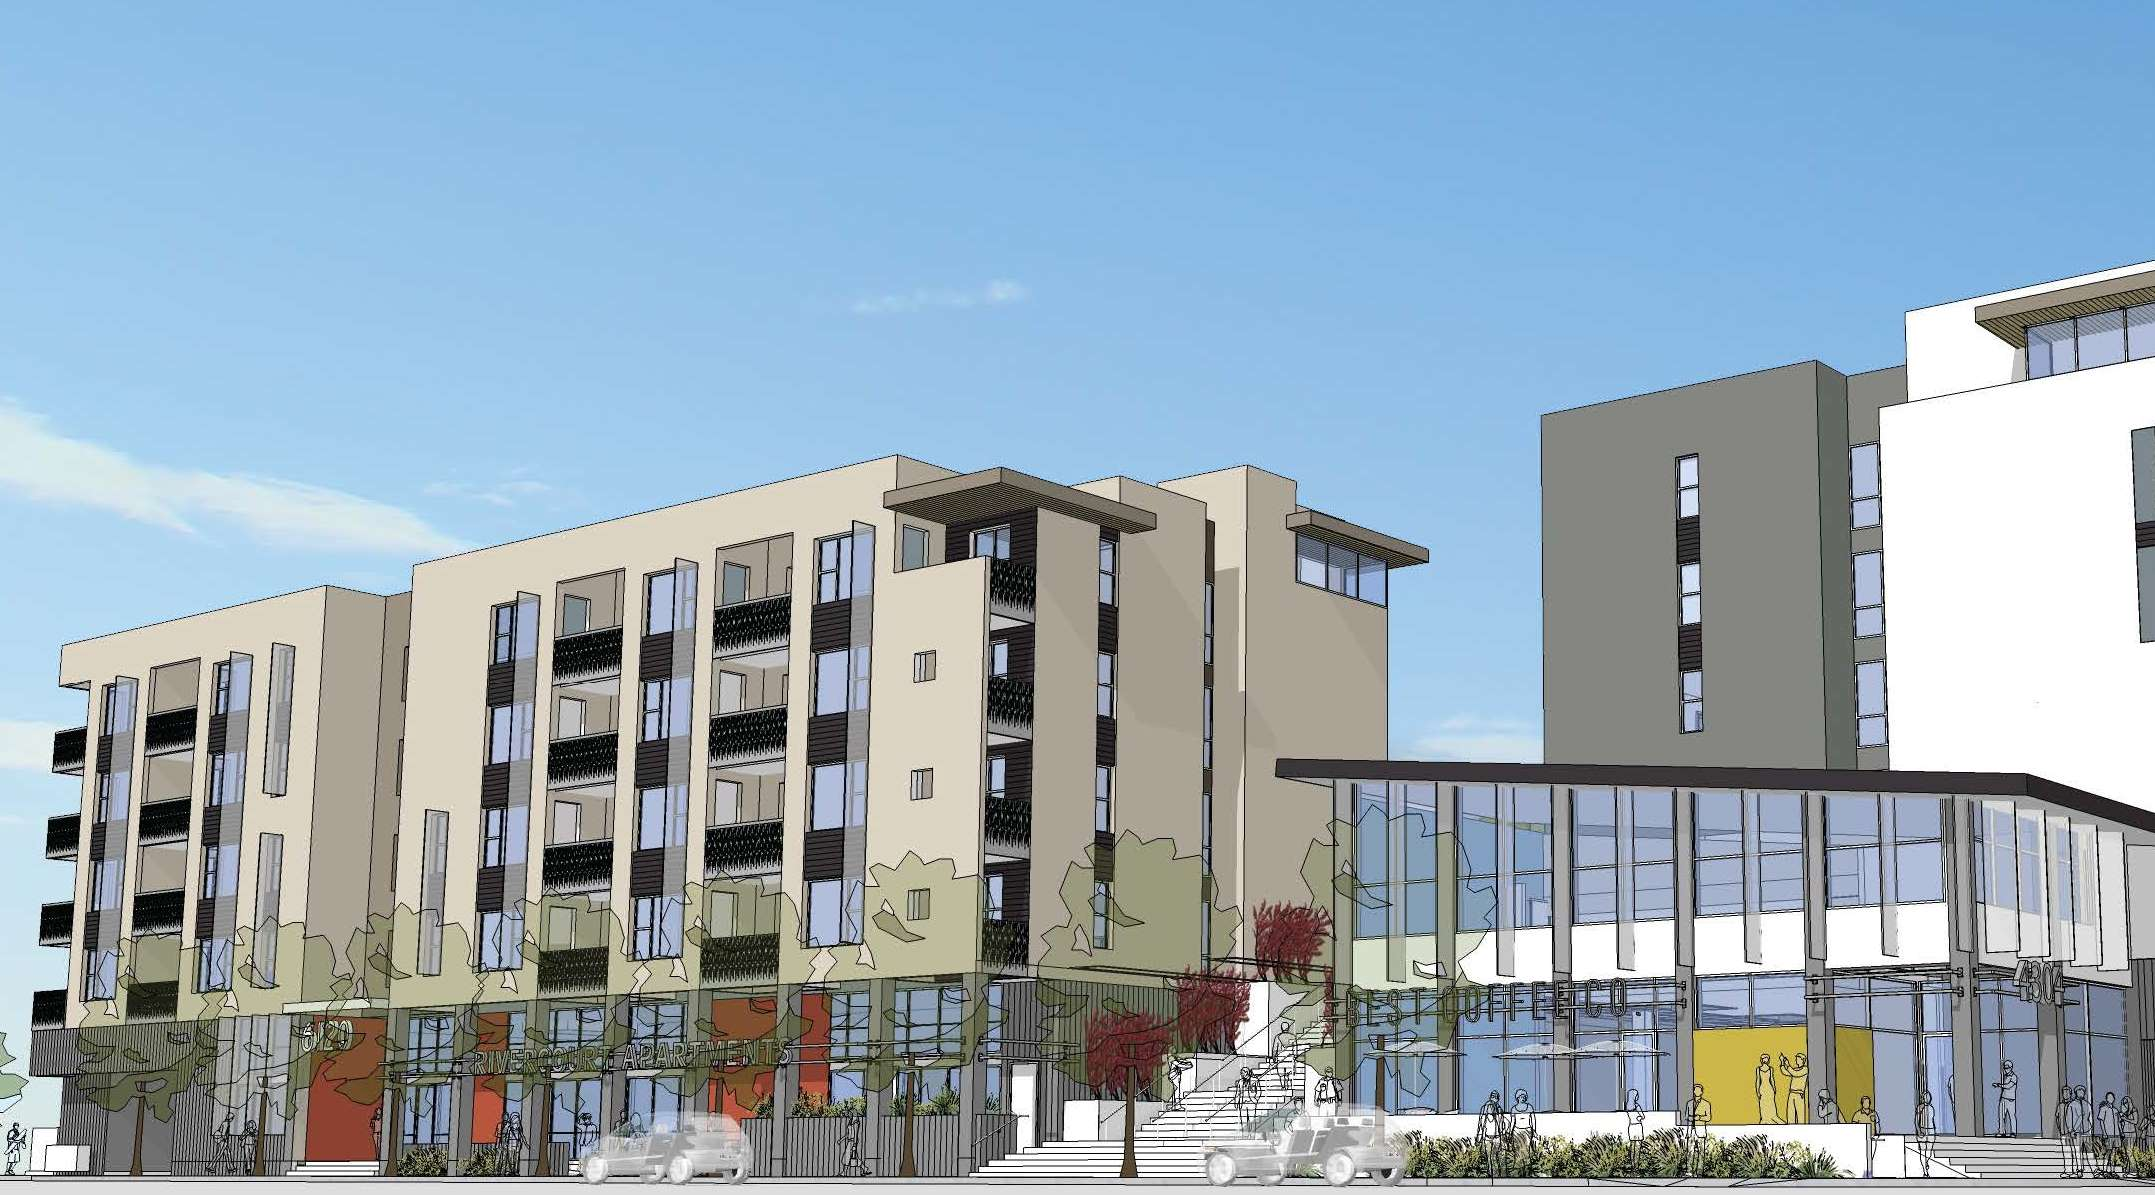 Affirmed Housing Begins 2018 With New Construction On 80